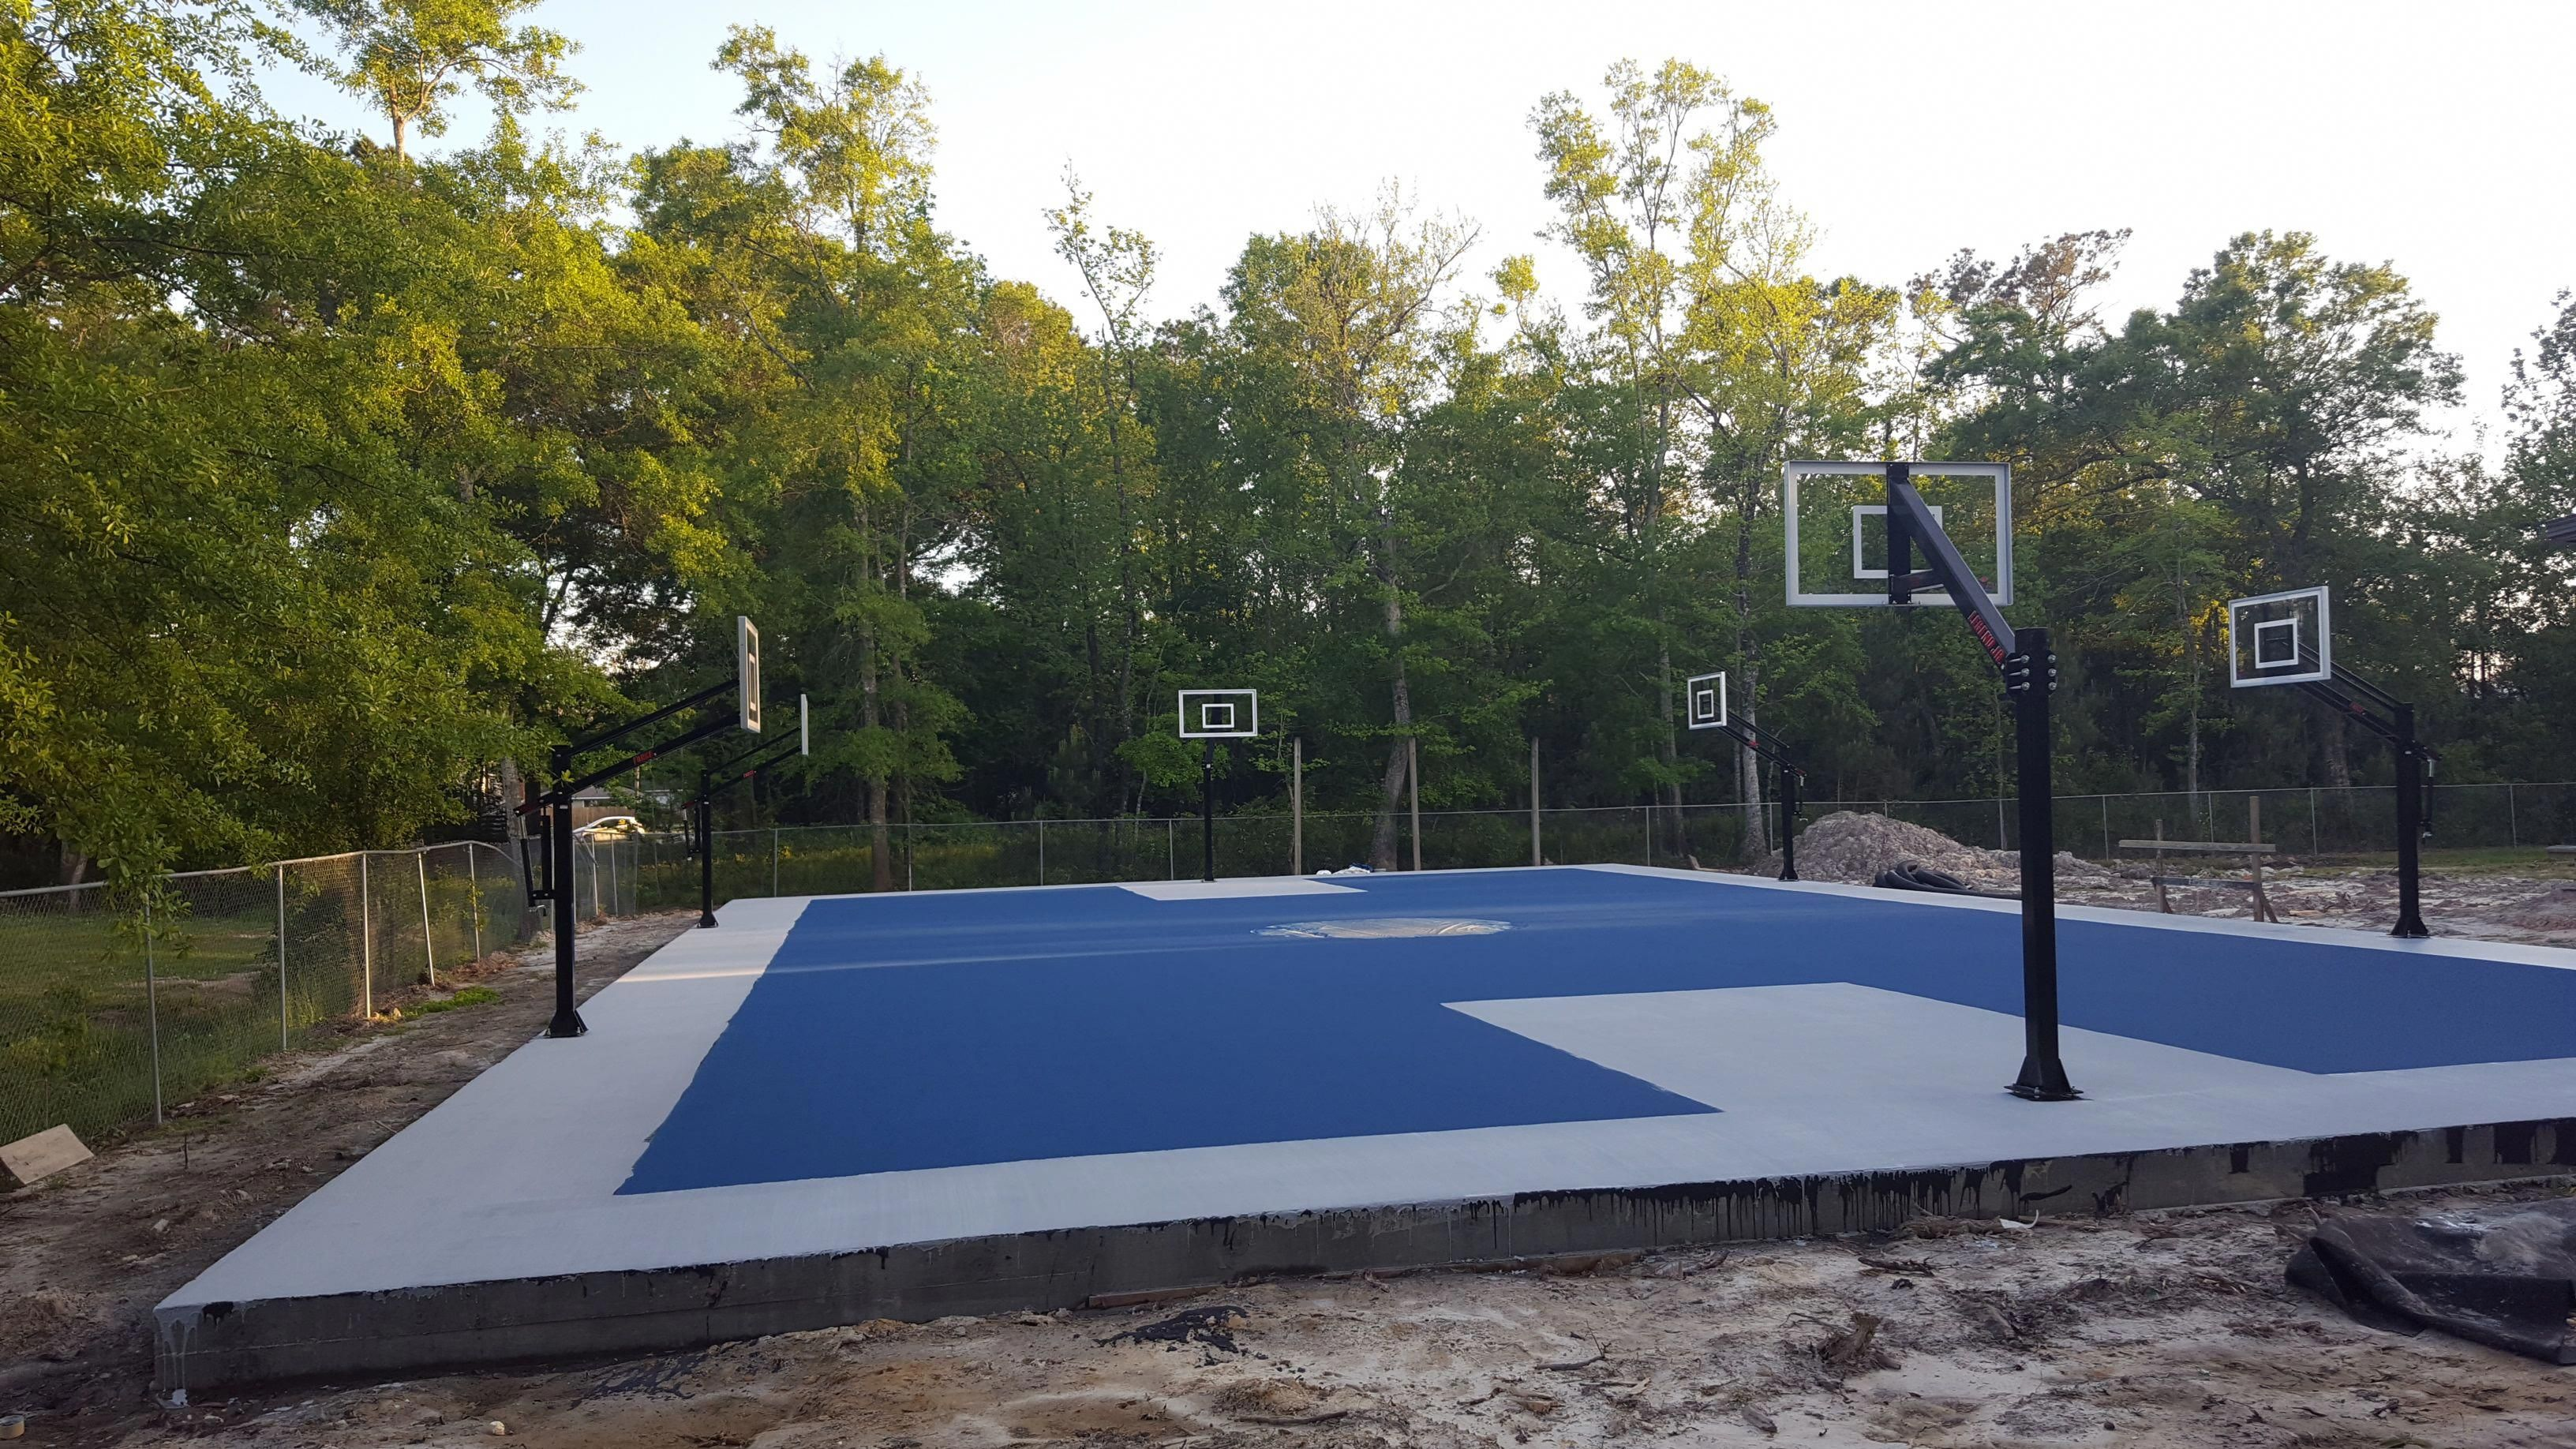 Work In Progress On A New Basketball Court In New Orleans The Court Features Two Legend Jr Fix Basketball Rim In Ground Basketball Goal High School Basketball